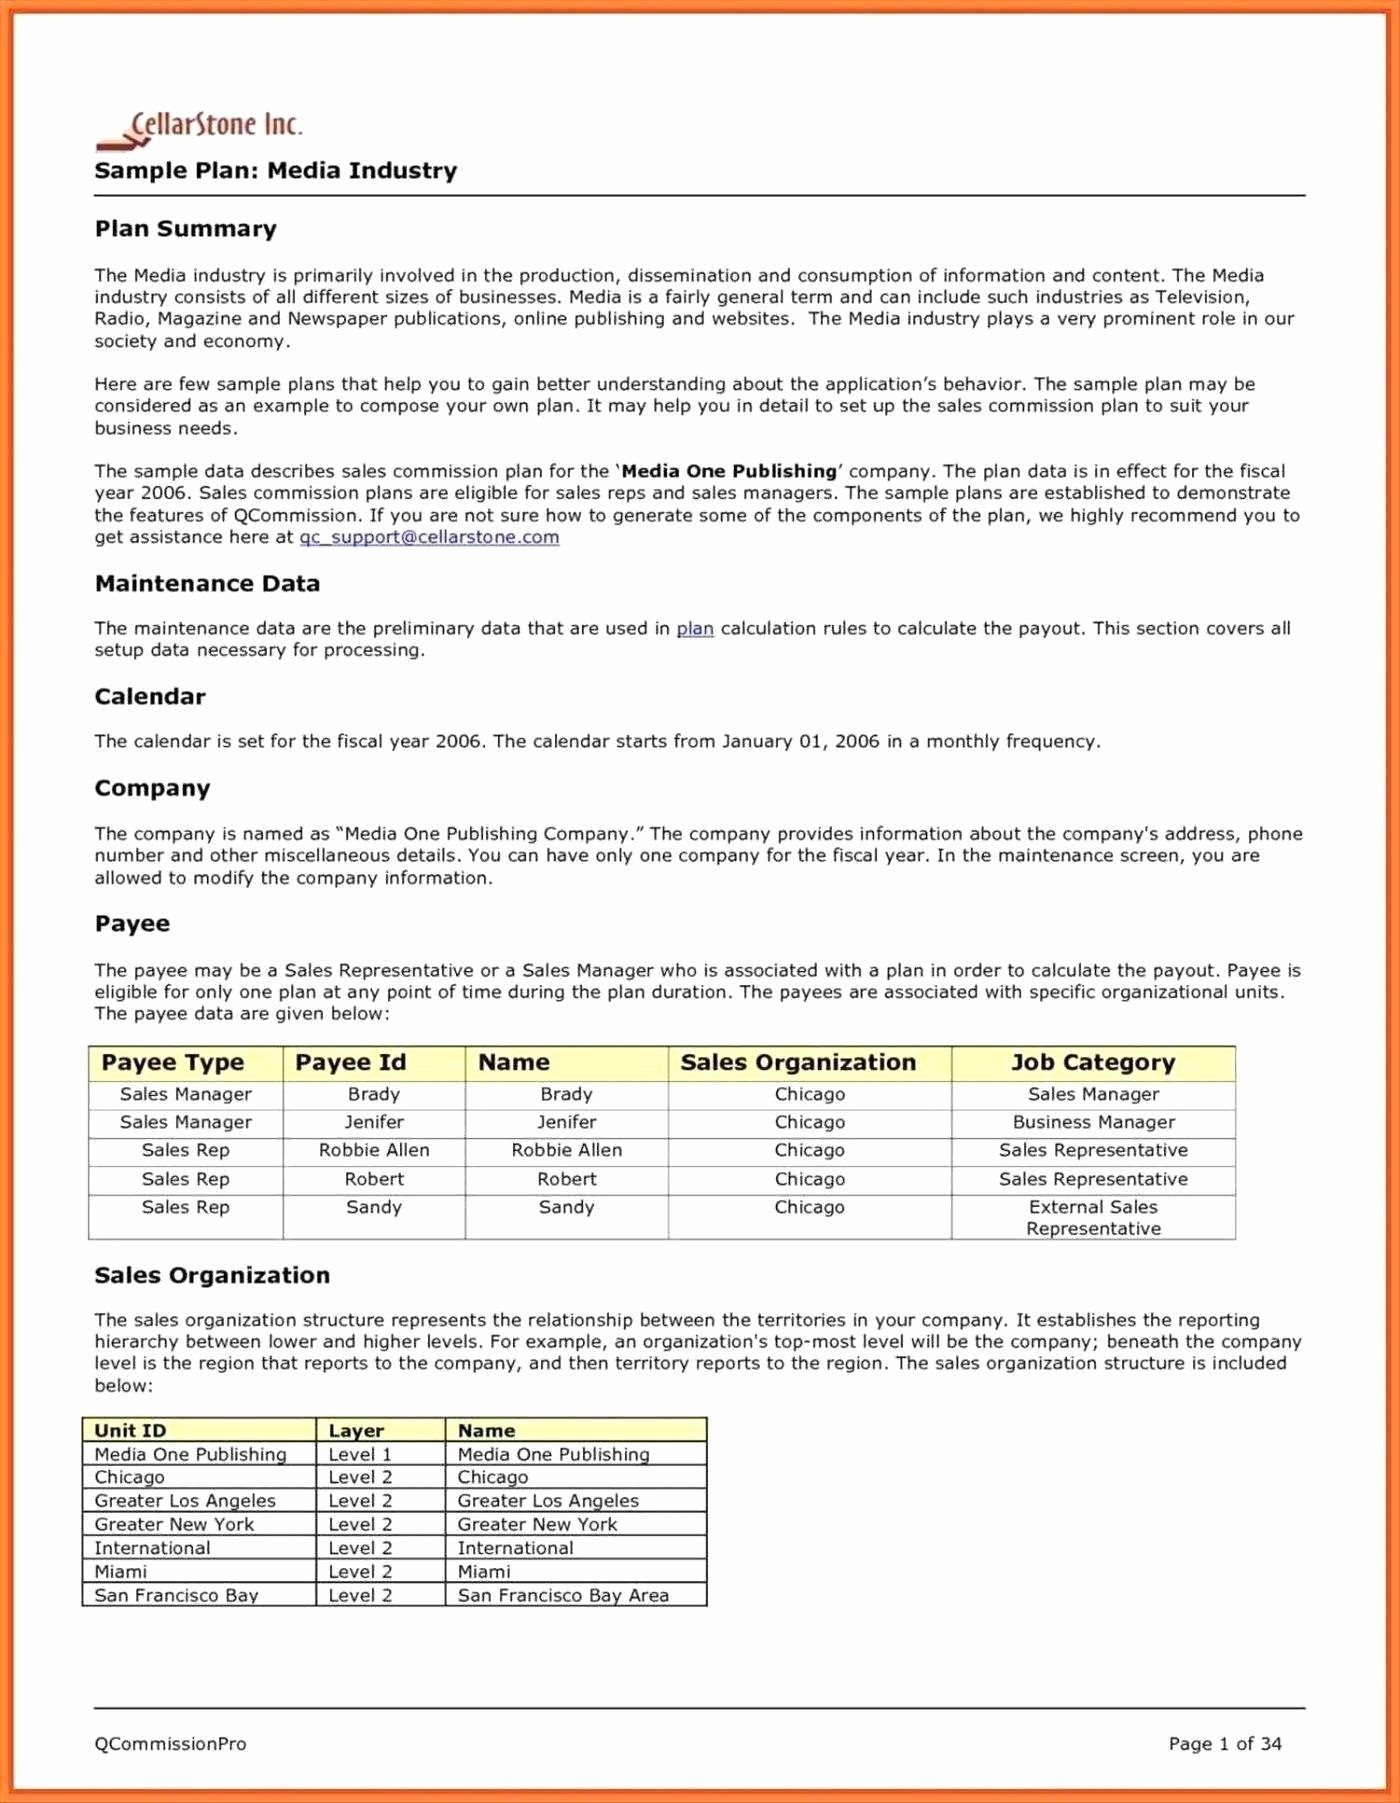 Recruitment Agency Business Plan Template In 2020 Action Plan